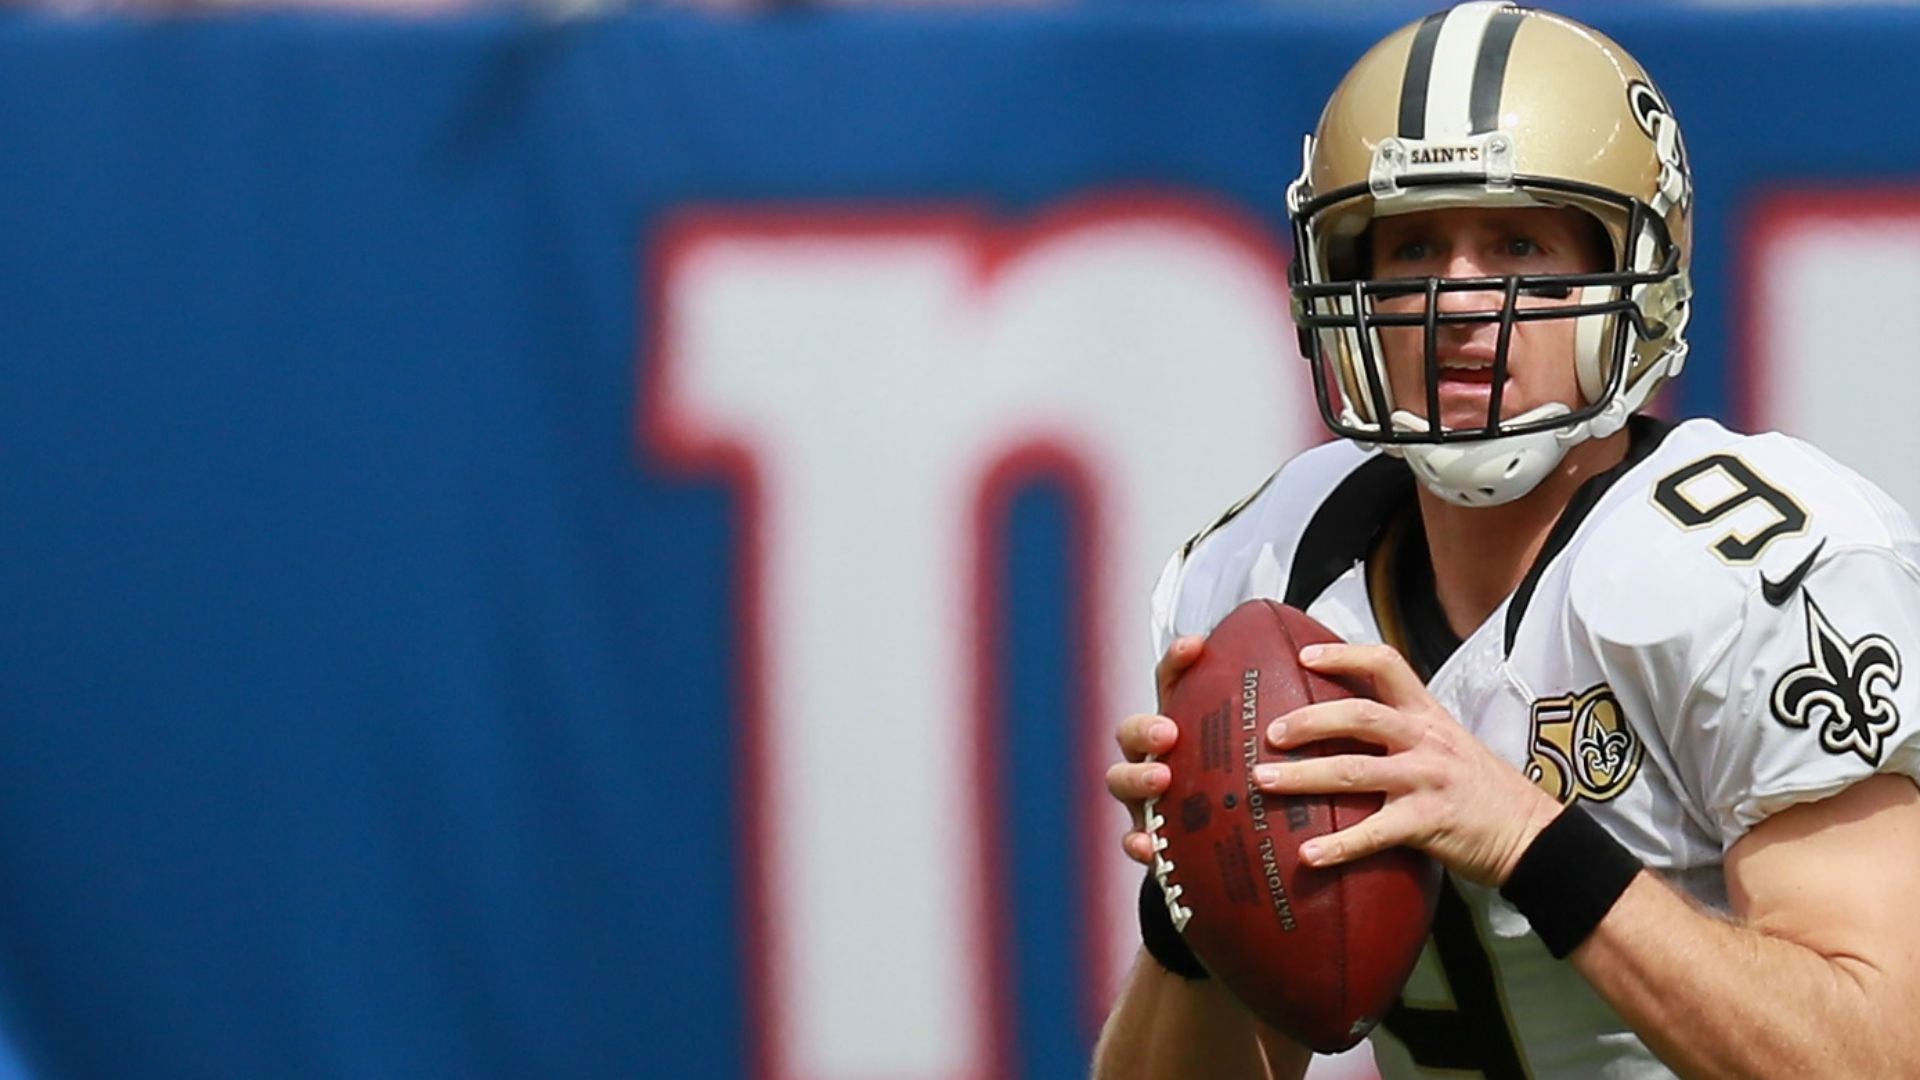 Other Saints Qb Drew Brees Excited About Game Vs